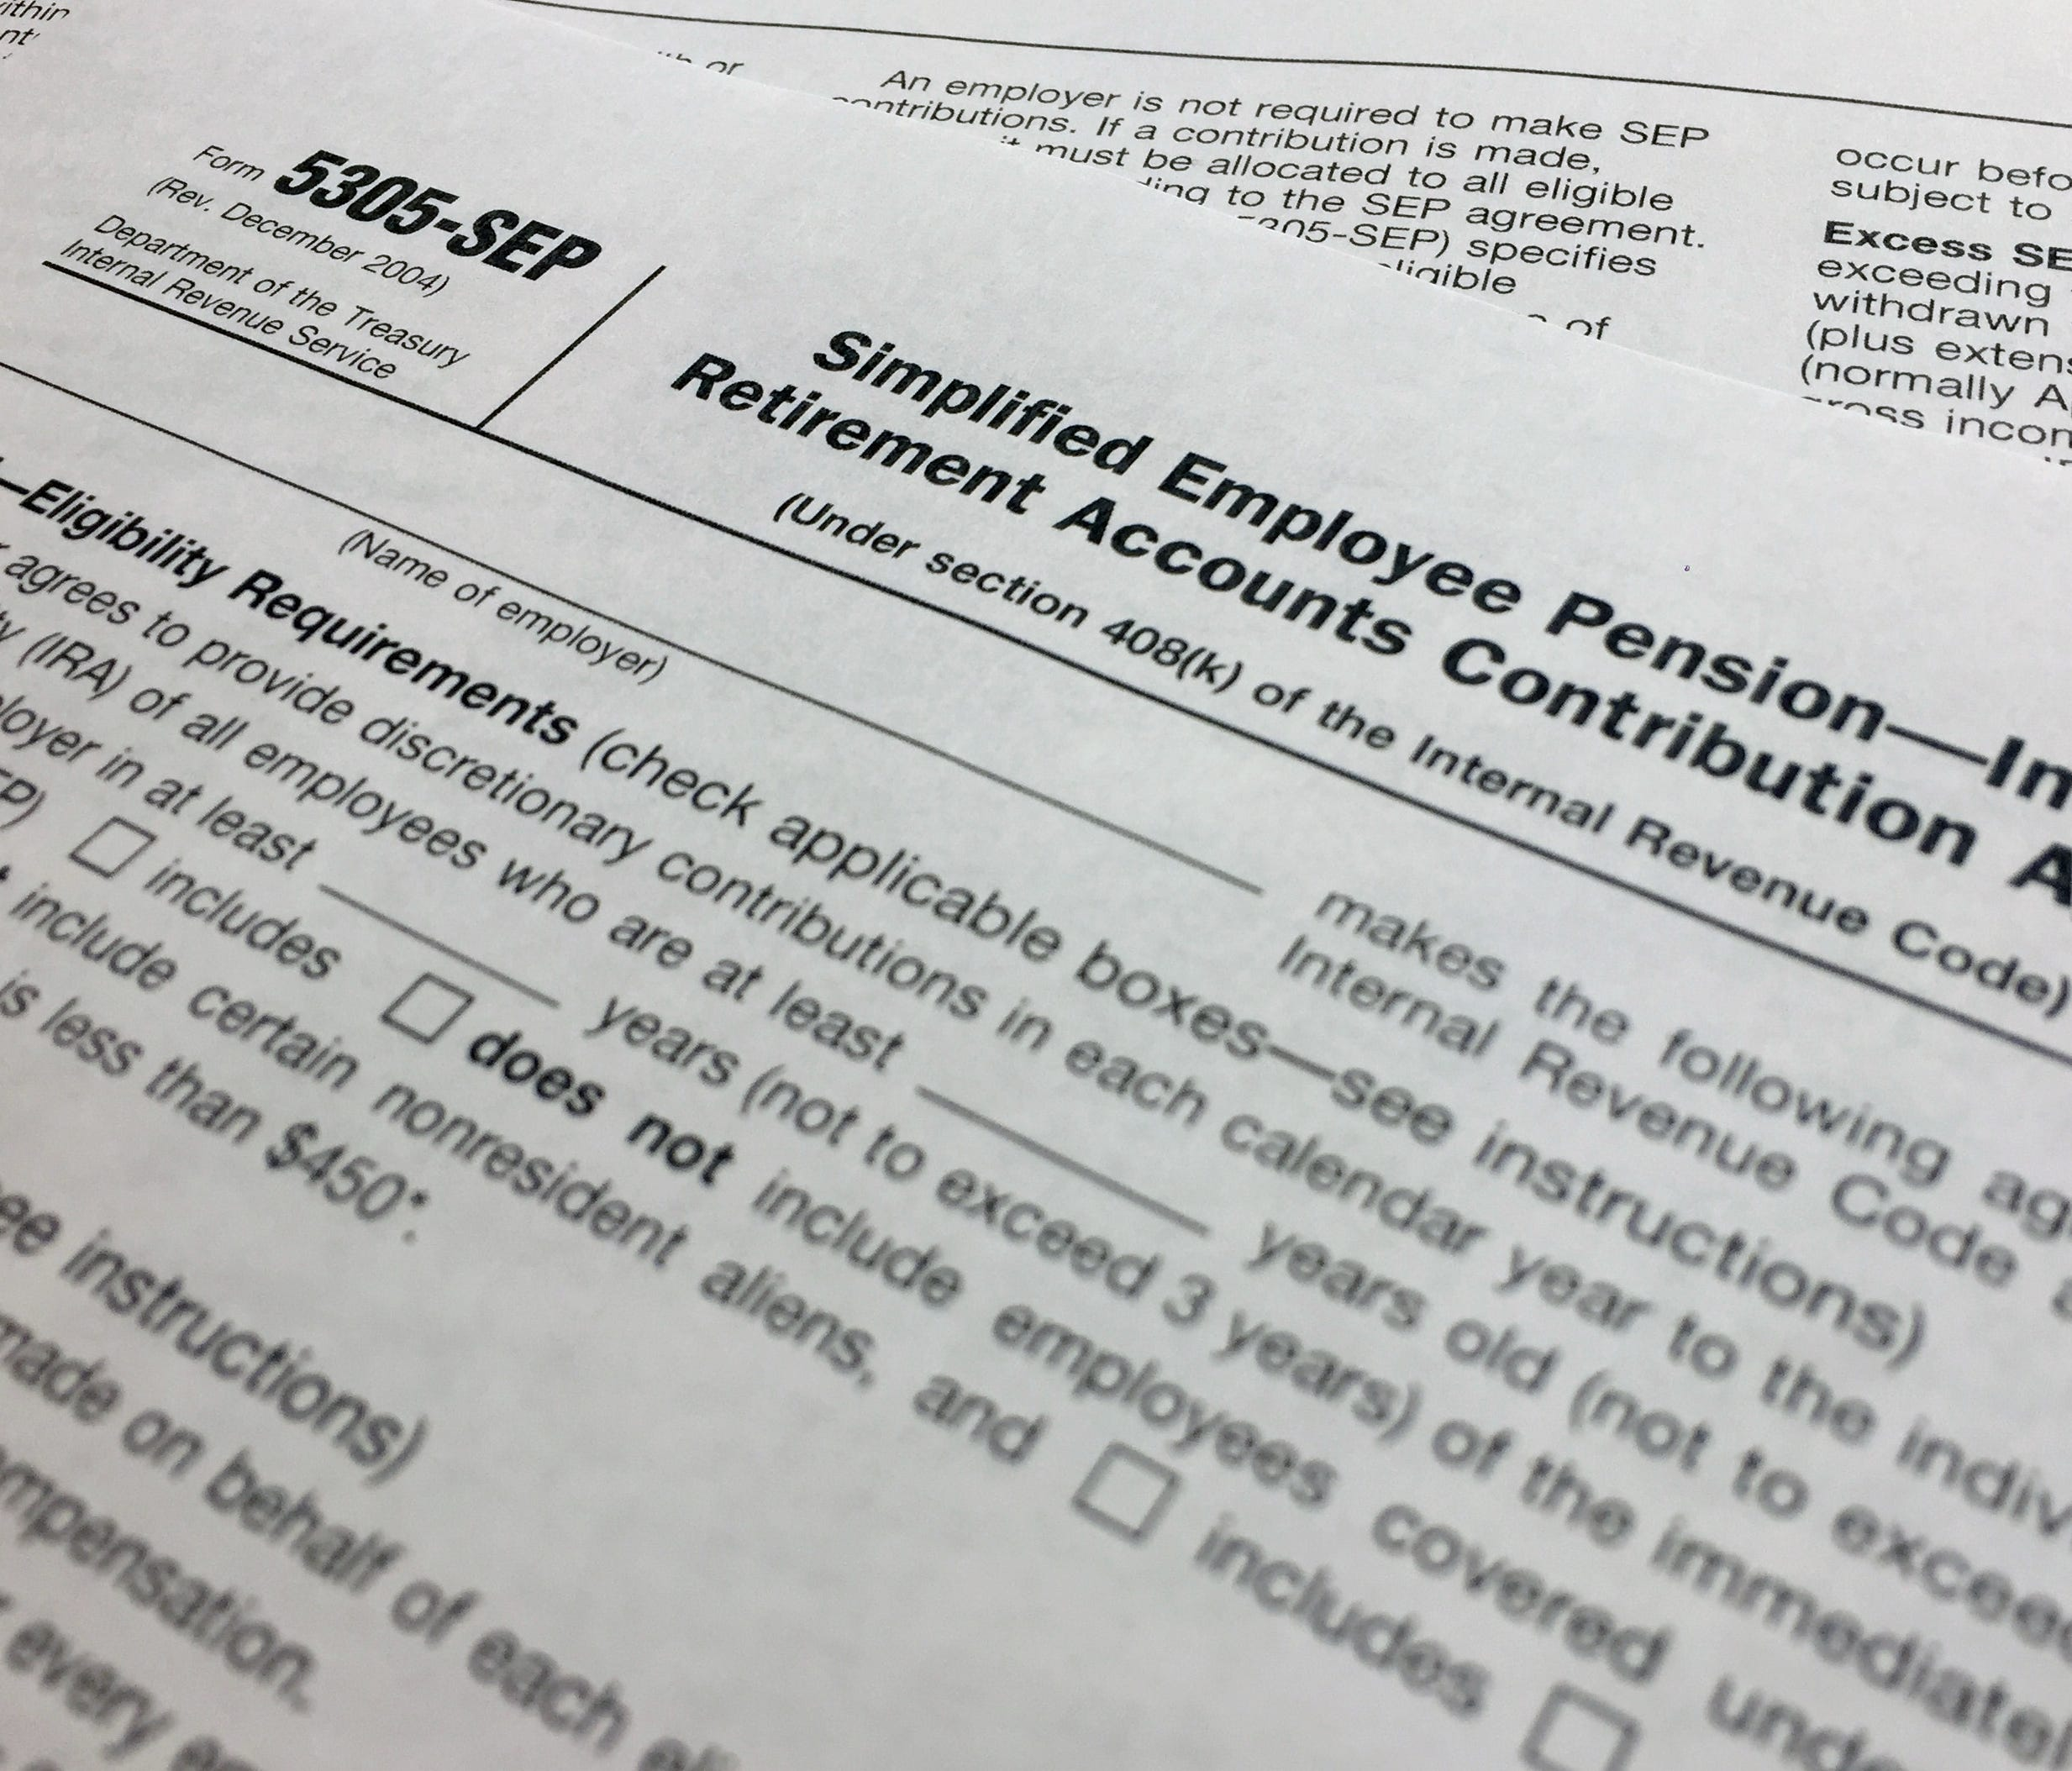 An IRS Form 5305, Simplified Employee Pension — Individual Retirement Accounts Contribution Agreement is shown in New York on Monday, April 2, 2018. If small business owners want to set up the least complex retirement plans for their employees, the S